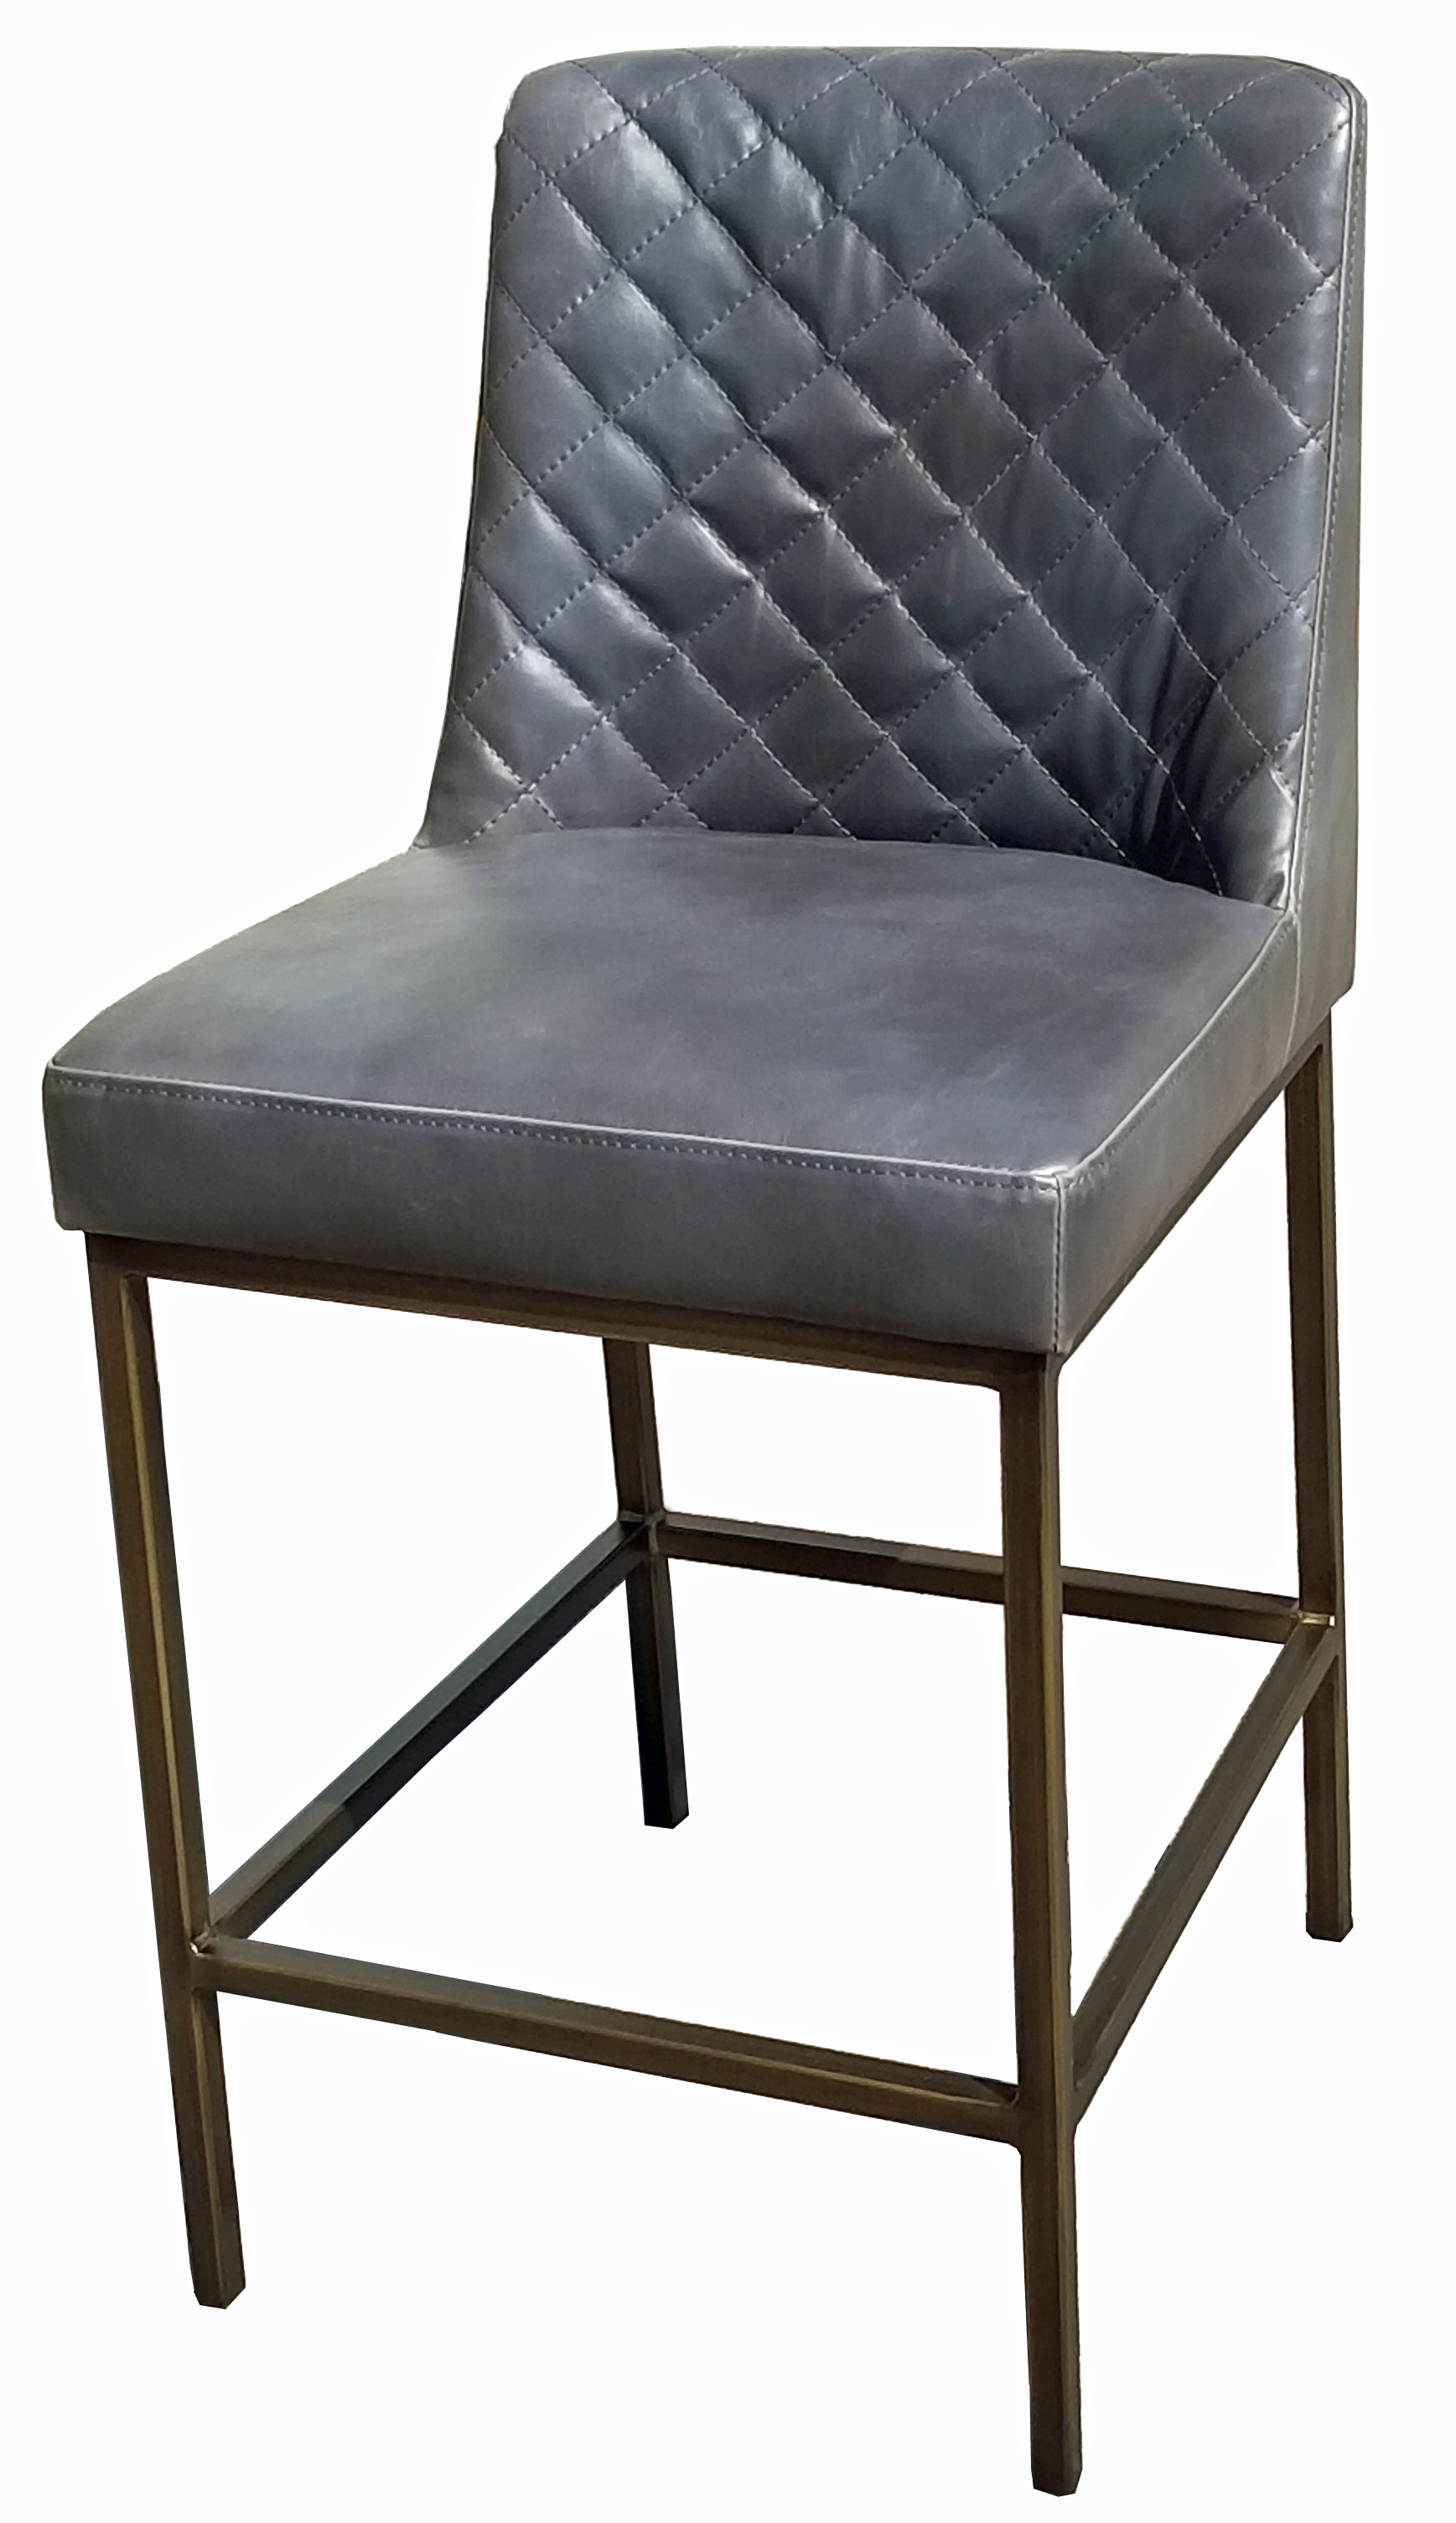 plus wooden padded and bar ksp most leather grey contemporary with backs fabric kitchen barstool folding stuff pub counter stool arms cheap gray stools tiffany height brilliant